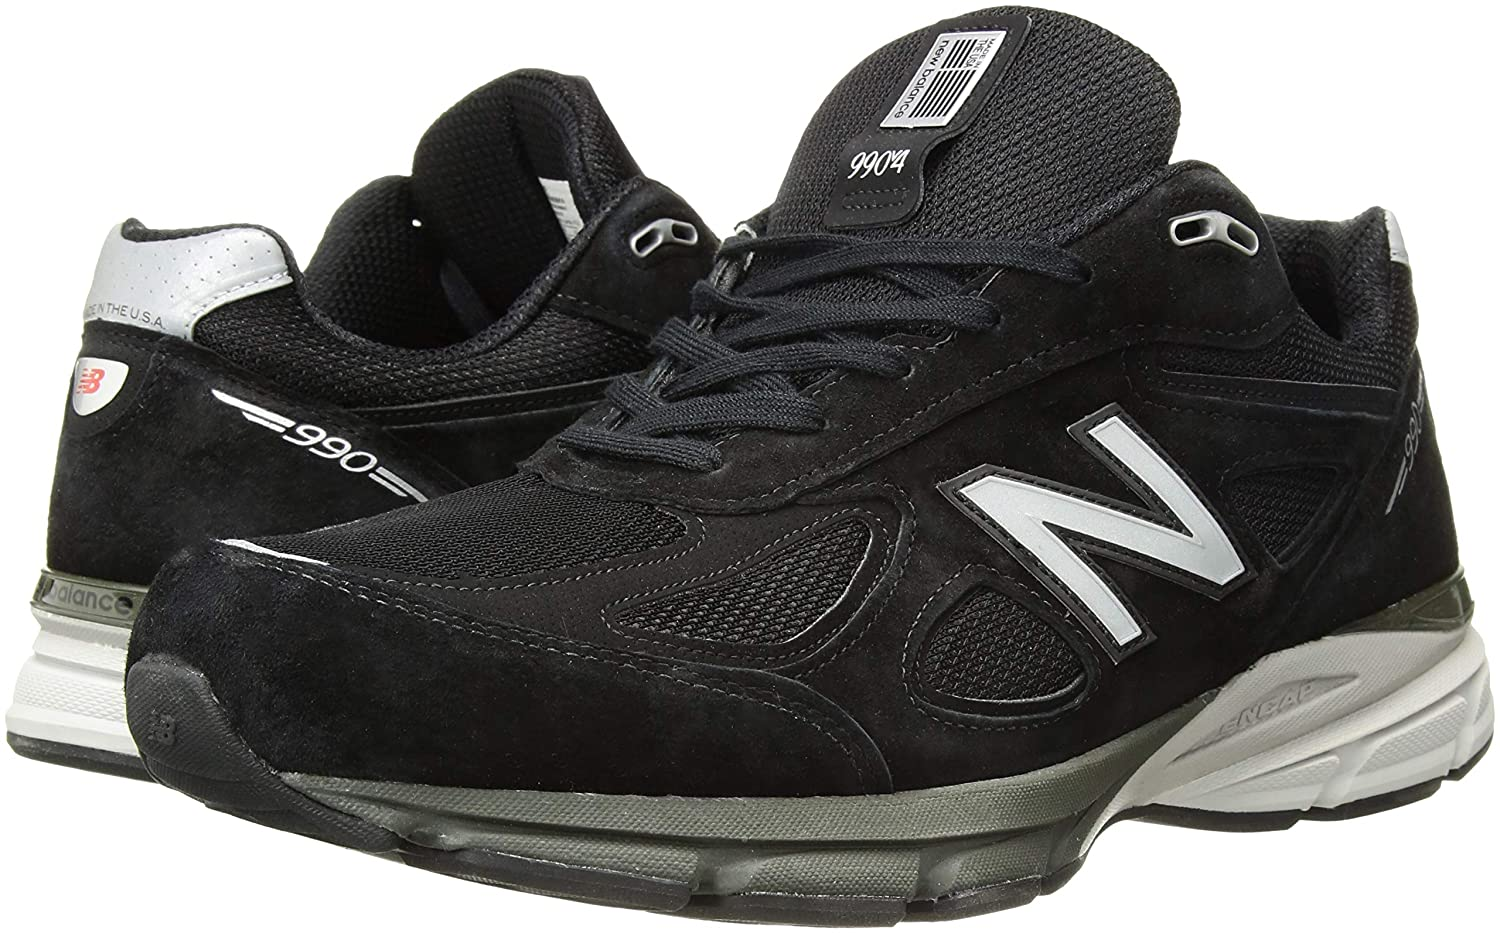 New-Balance-990-990v4-Classicc-Retro-Fashion-Sneaker-Made-in-USA thumbnail 29